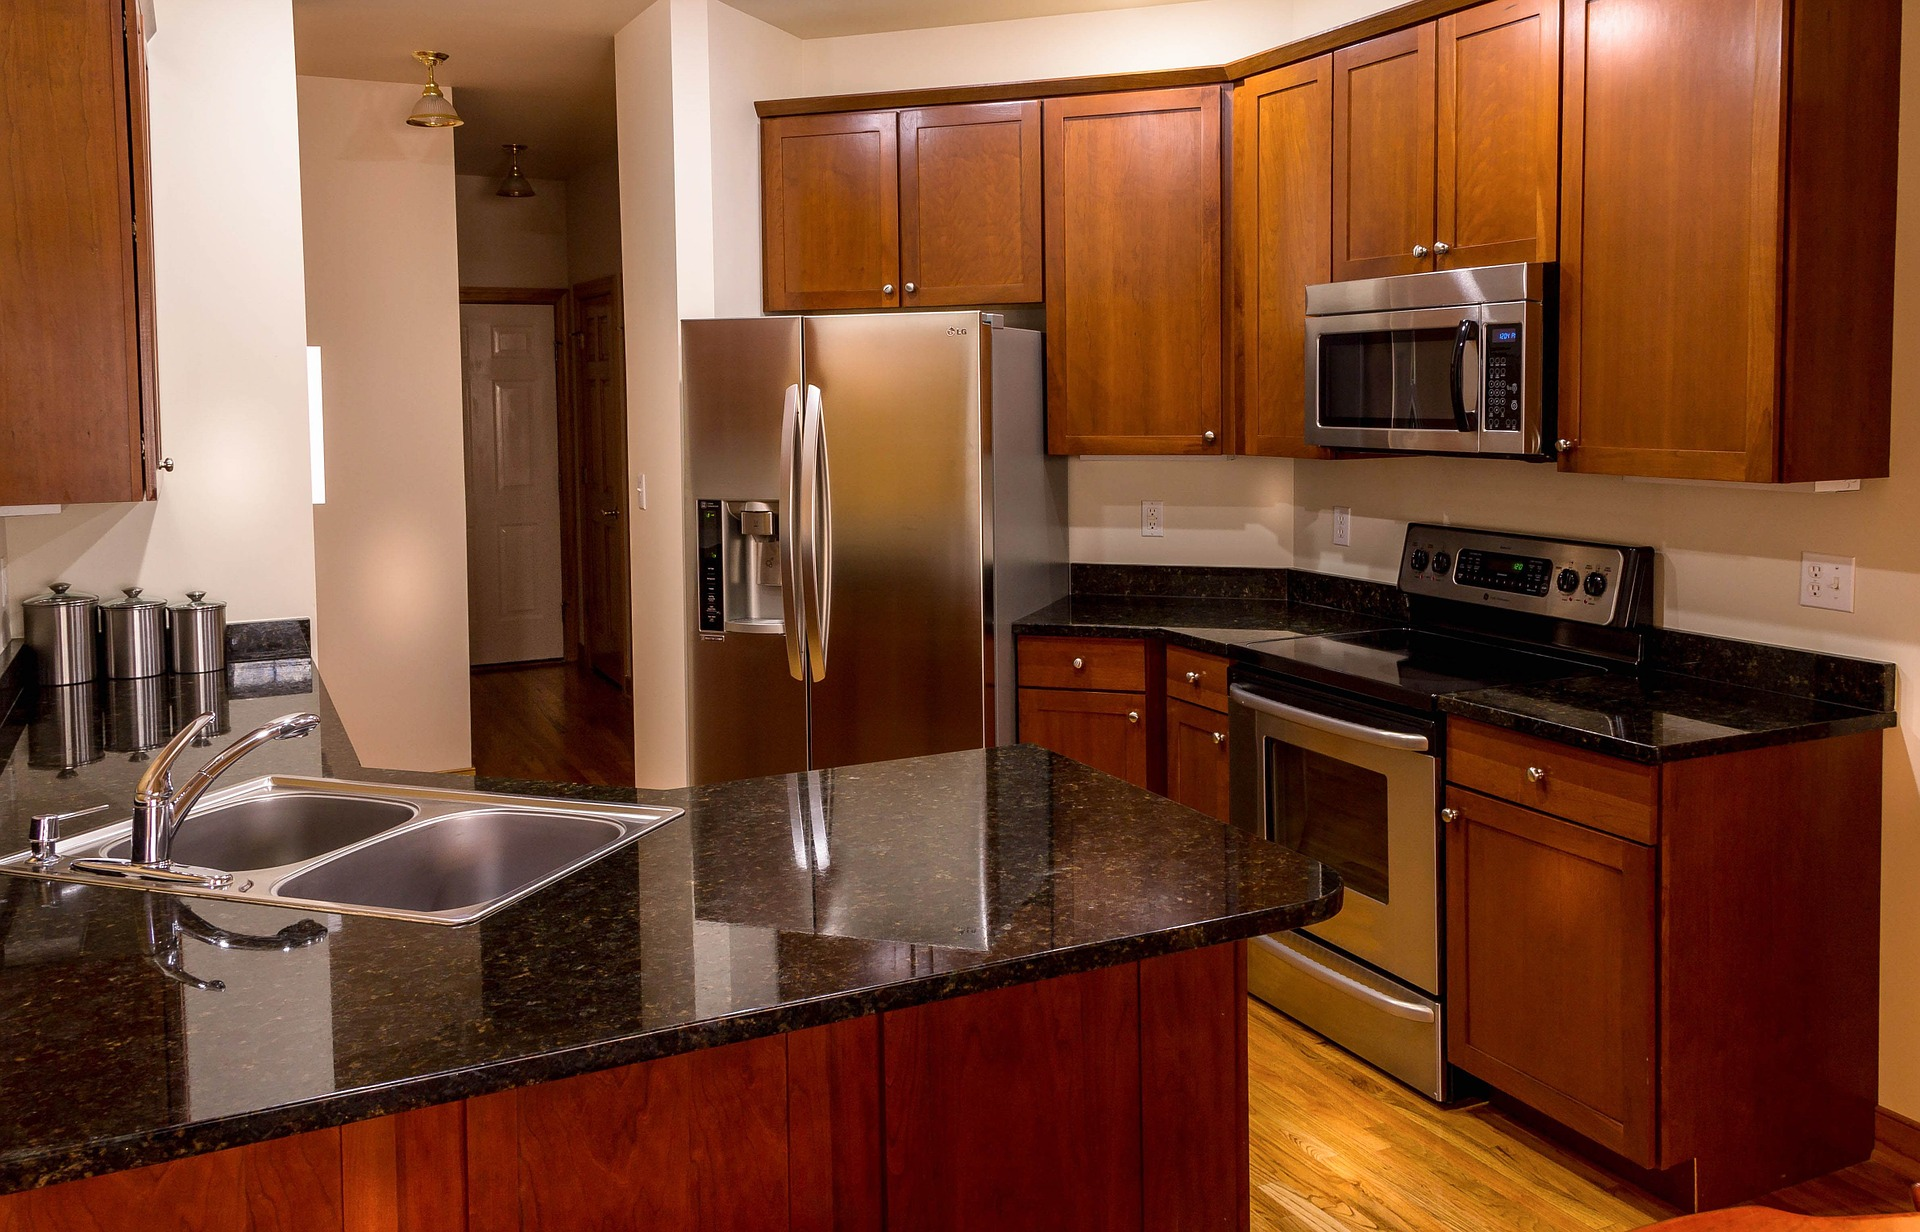 Which is the best kind of wood for kitchen cabinets